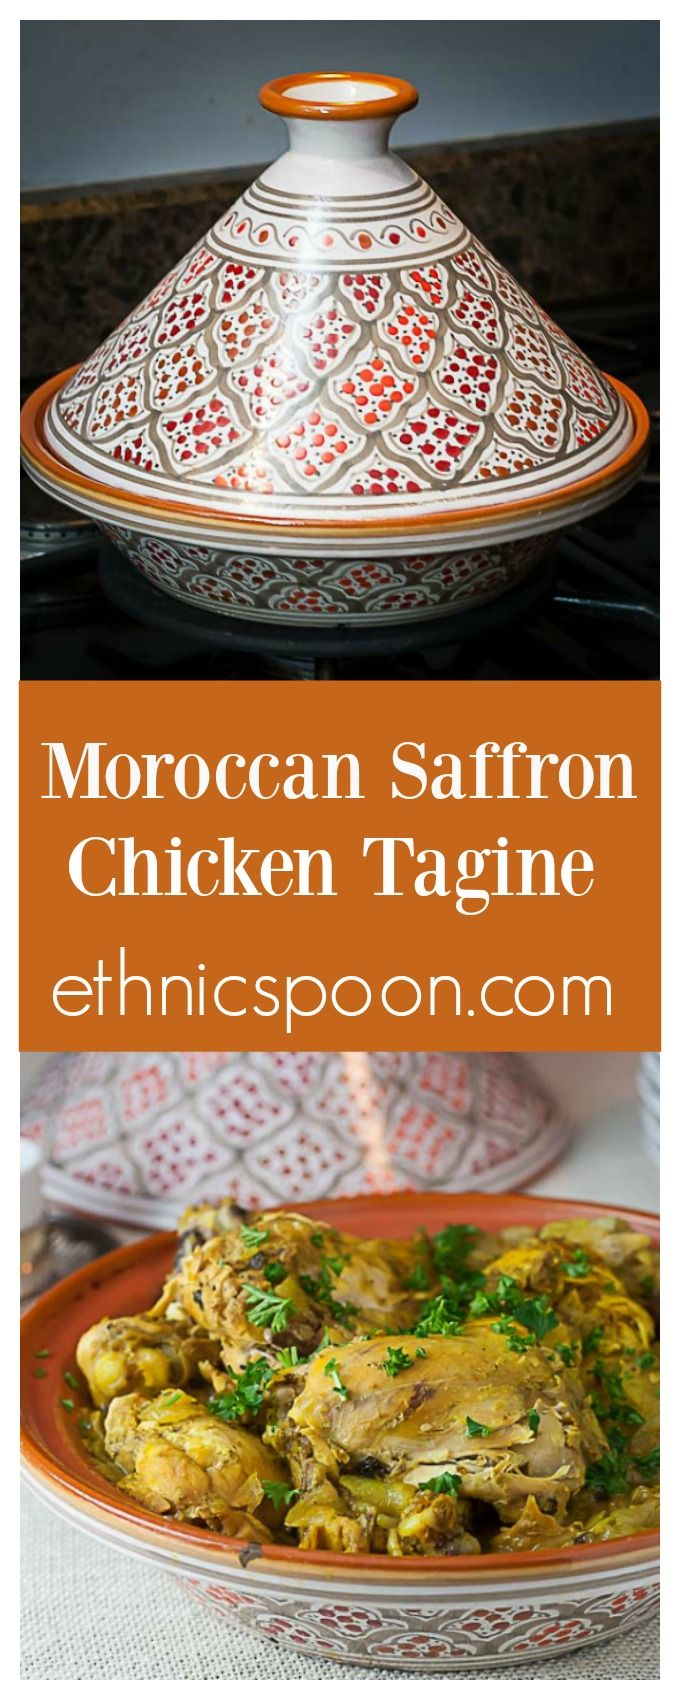 Morocccan saffron chicken is a really exotic yet easy one pot meal that can be made in a tagine or slow cooker. | ethnicspoon.com